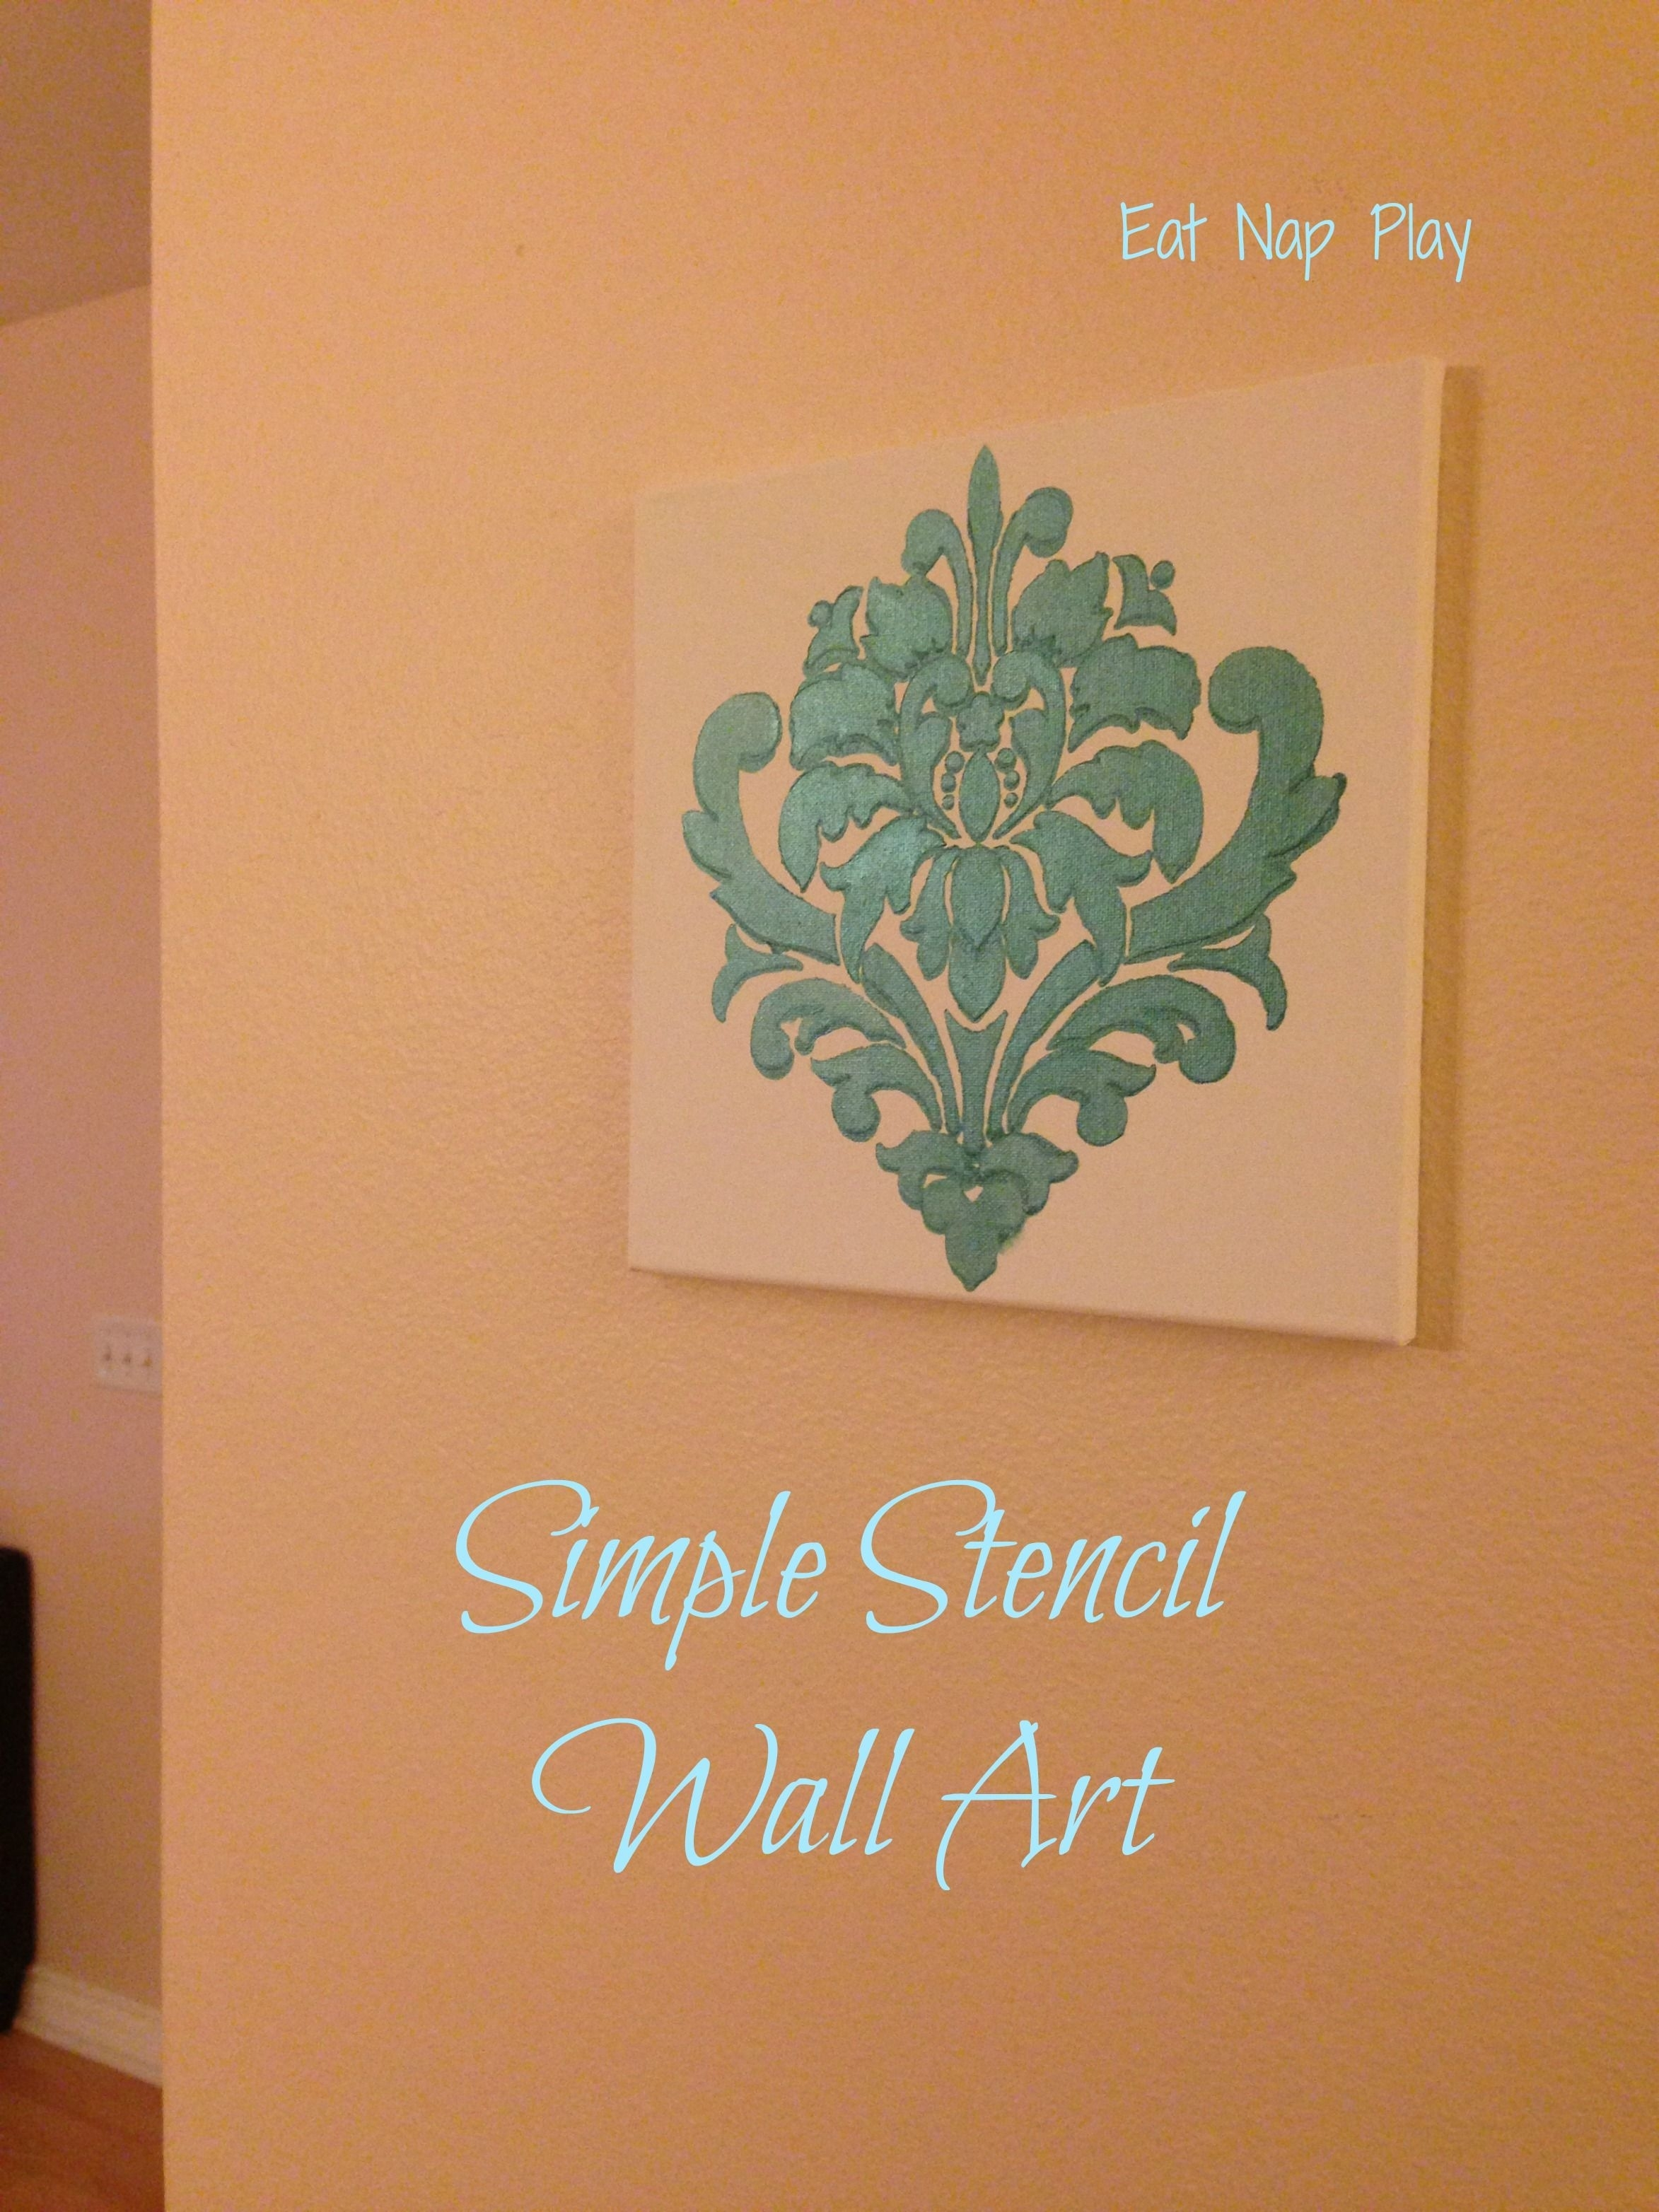 Wall Art (2346×3128) | Stencil | Pinterest | Stenciling With Newest Stencil Wall Art (Gallery 12 of 20)